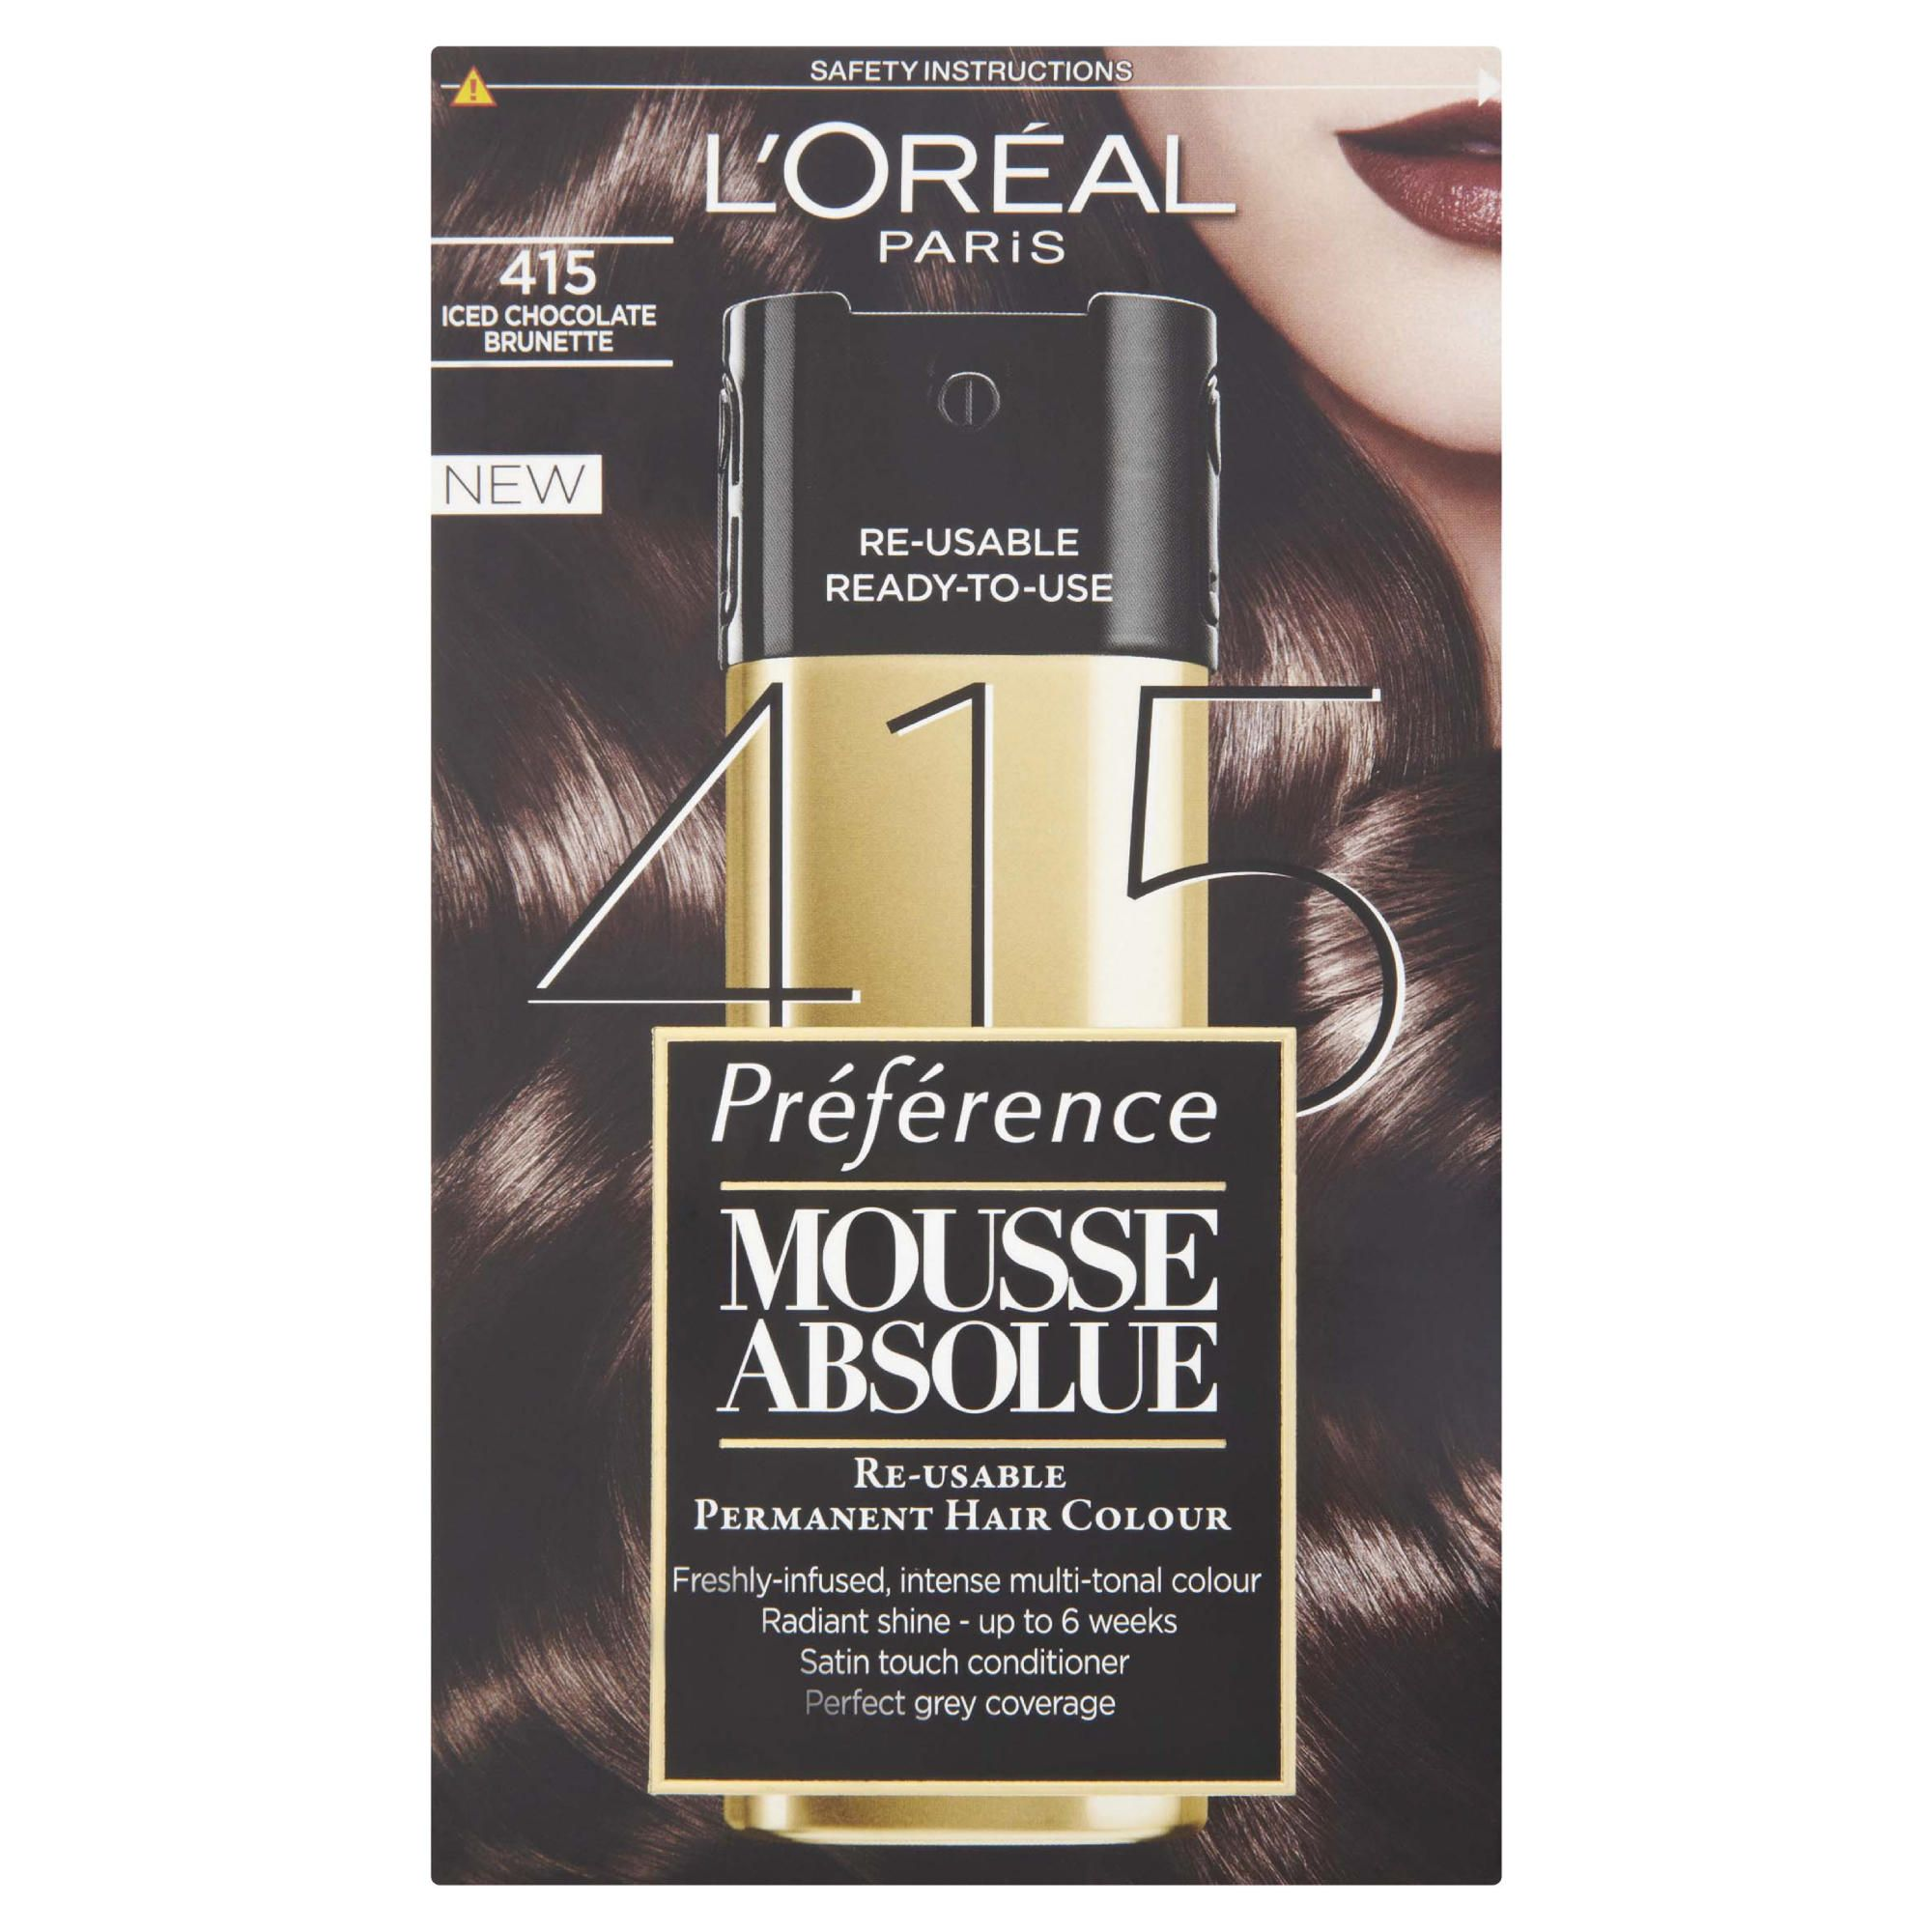 L'Oreal Mousse Absolue Iced Chocolate Brunette 415